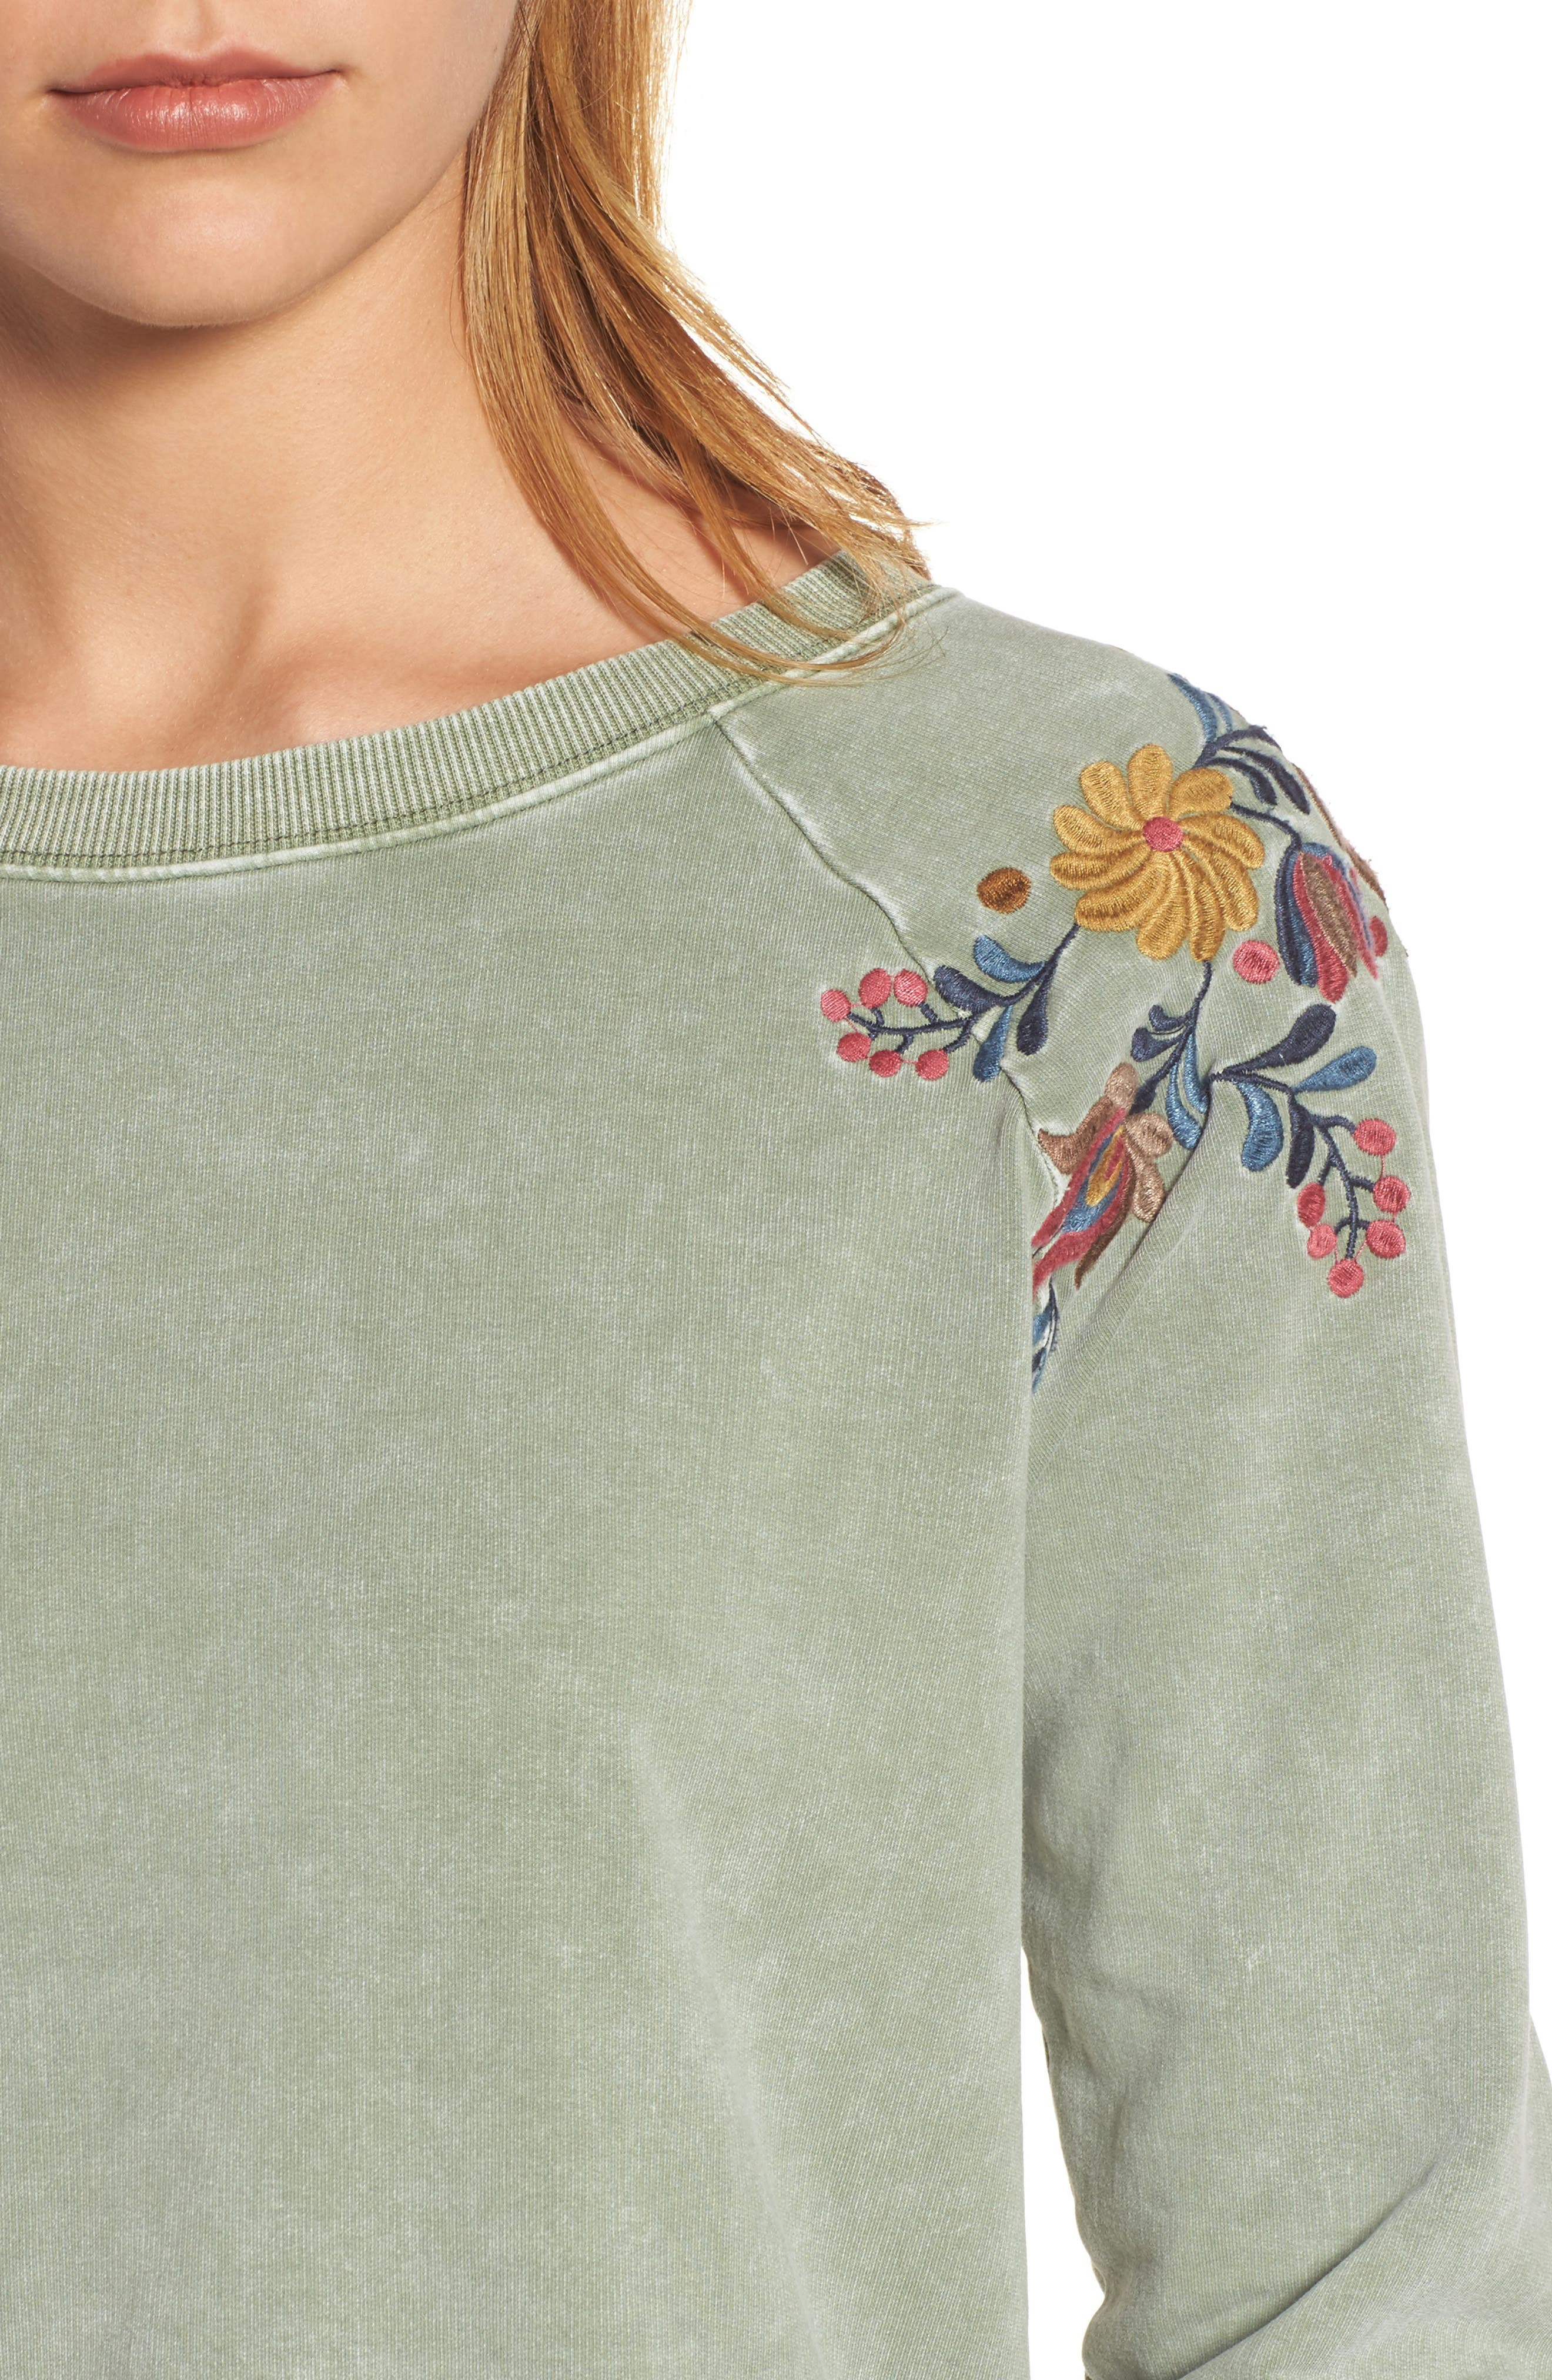 Embroidered Lace-Up Back Sweatshirt,                             Alternate thumbnail 4, color,                             301